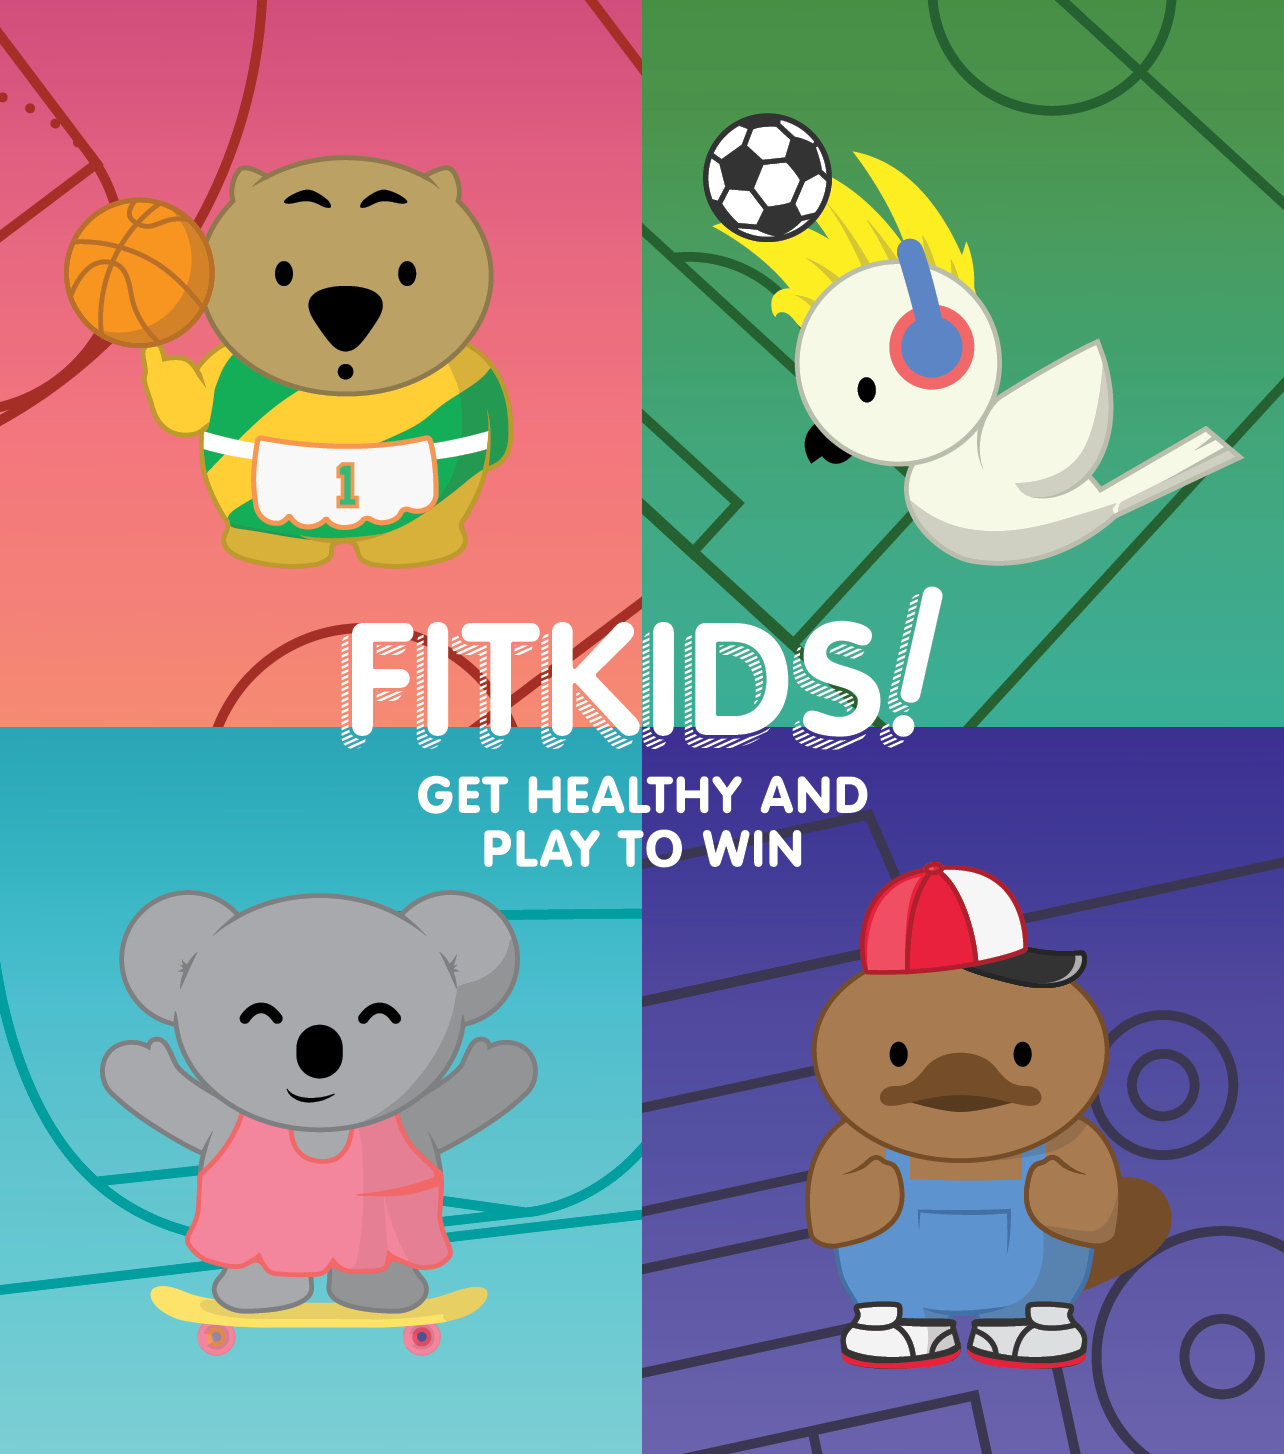 CH4217_Fitkids!_Webtile-@2-642x727